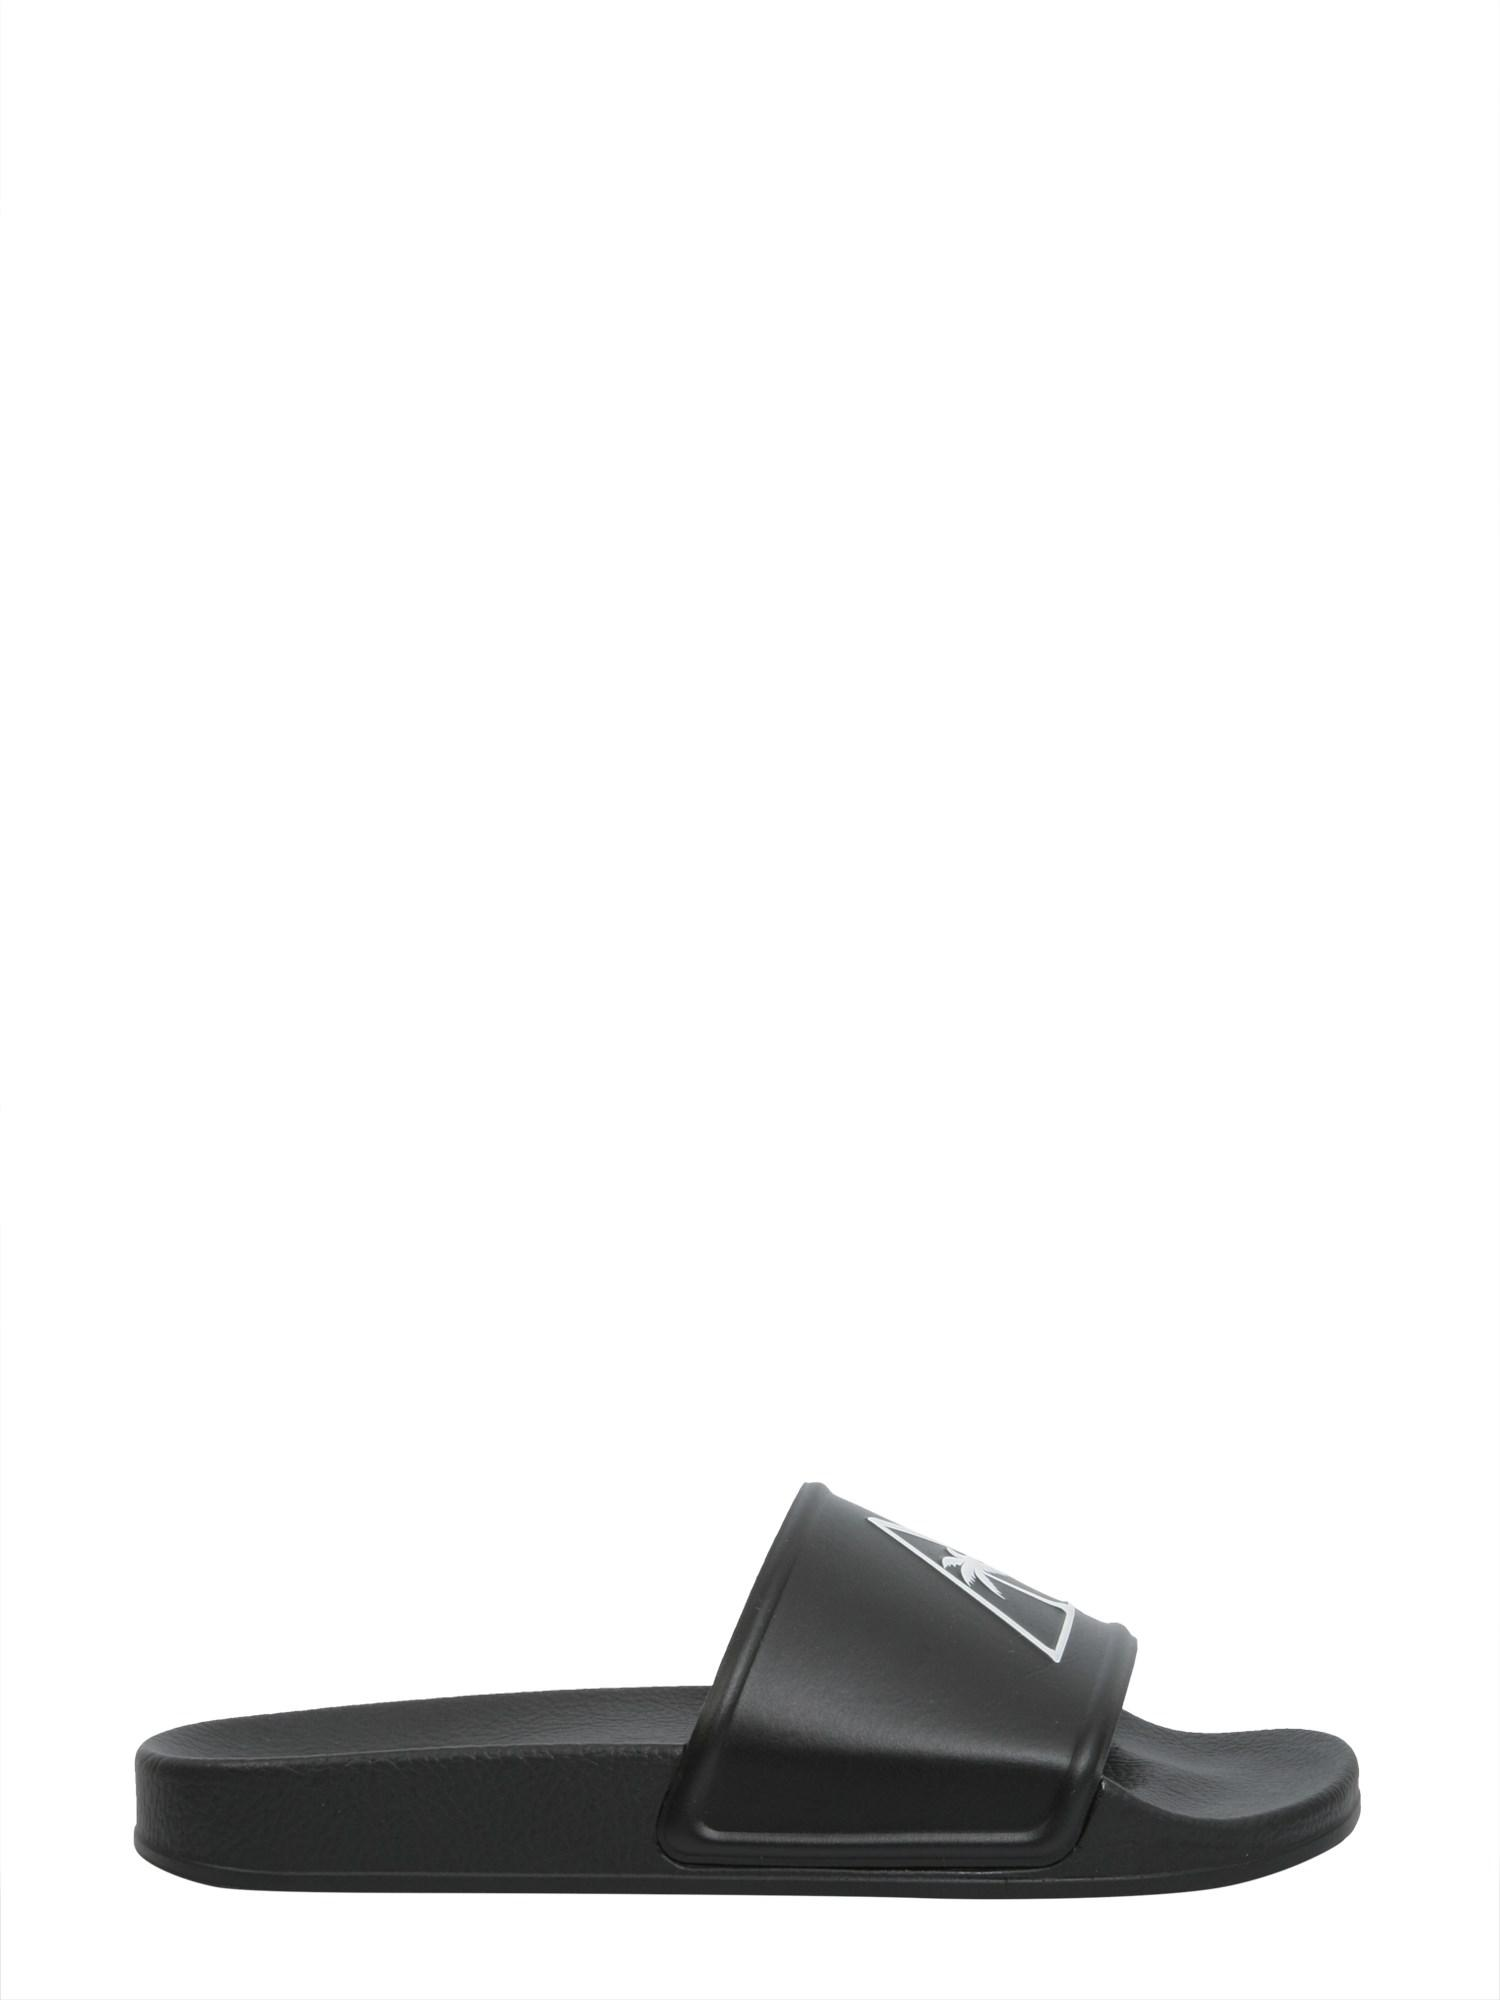 16f108985a1 Palm Angels Slide Rubber Sandals With Palm in Black for Men - Lyst